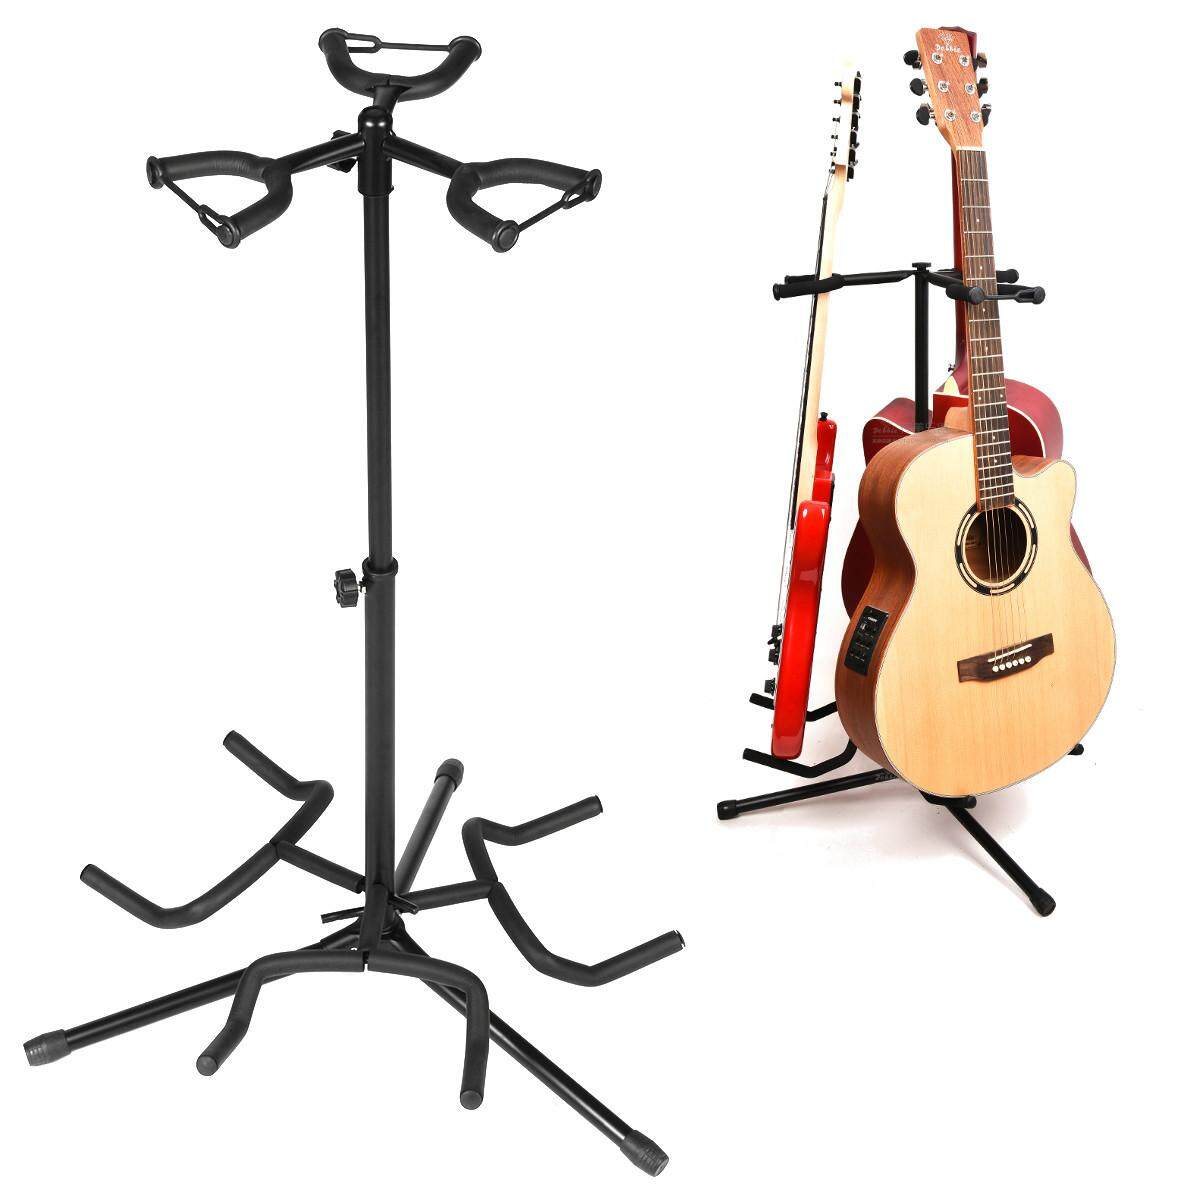 3 Multi Instrument Acoustic Electric Bass Guitar Iron Stand Storage Rack With Cotton Protection Head -